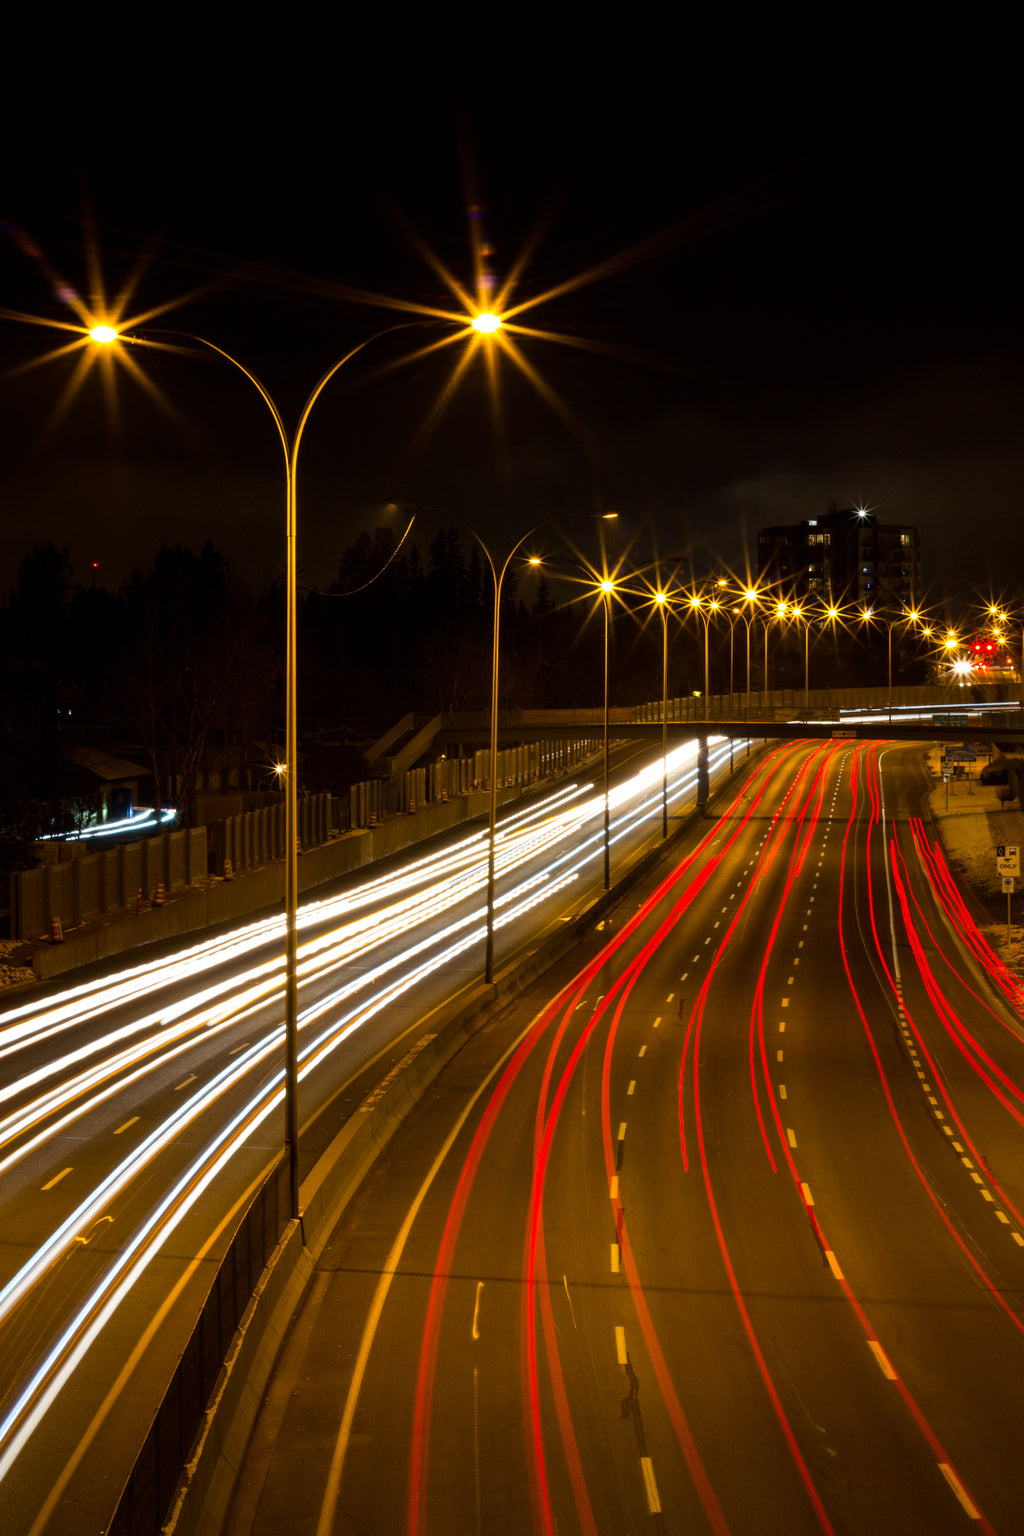 Crowchild Trail taillights and headlights, night photography, Calgary Alberta